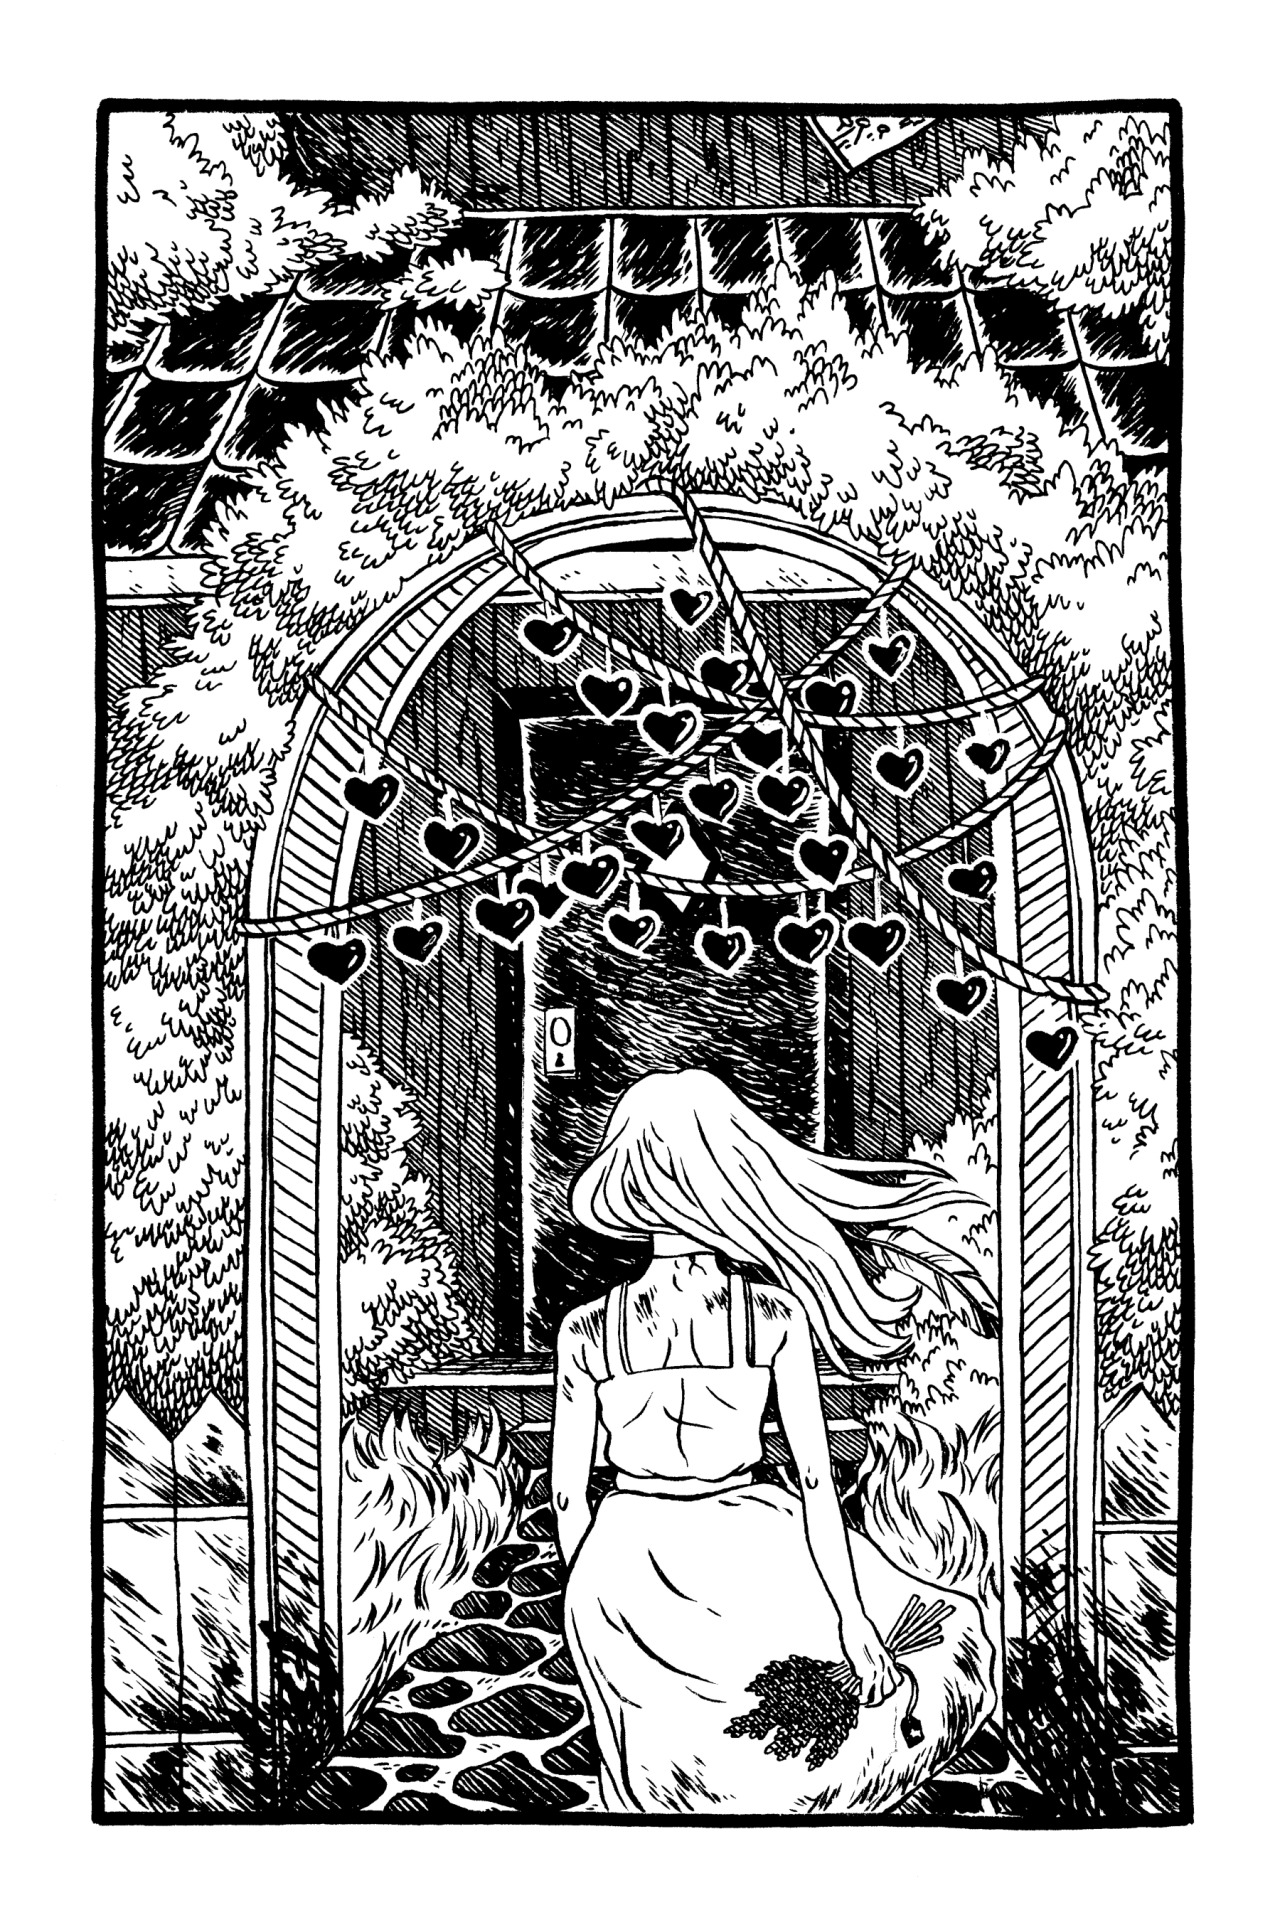 Illustration from Caitlin Skaalrud's Houses of the Holy.